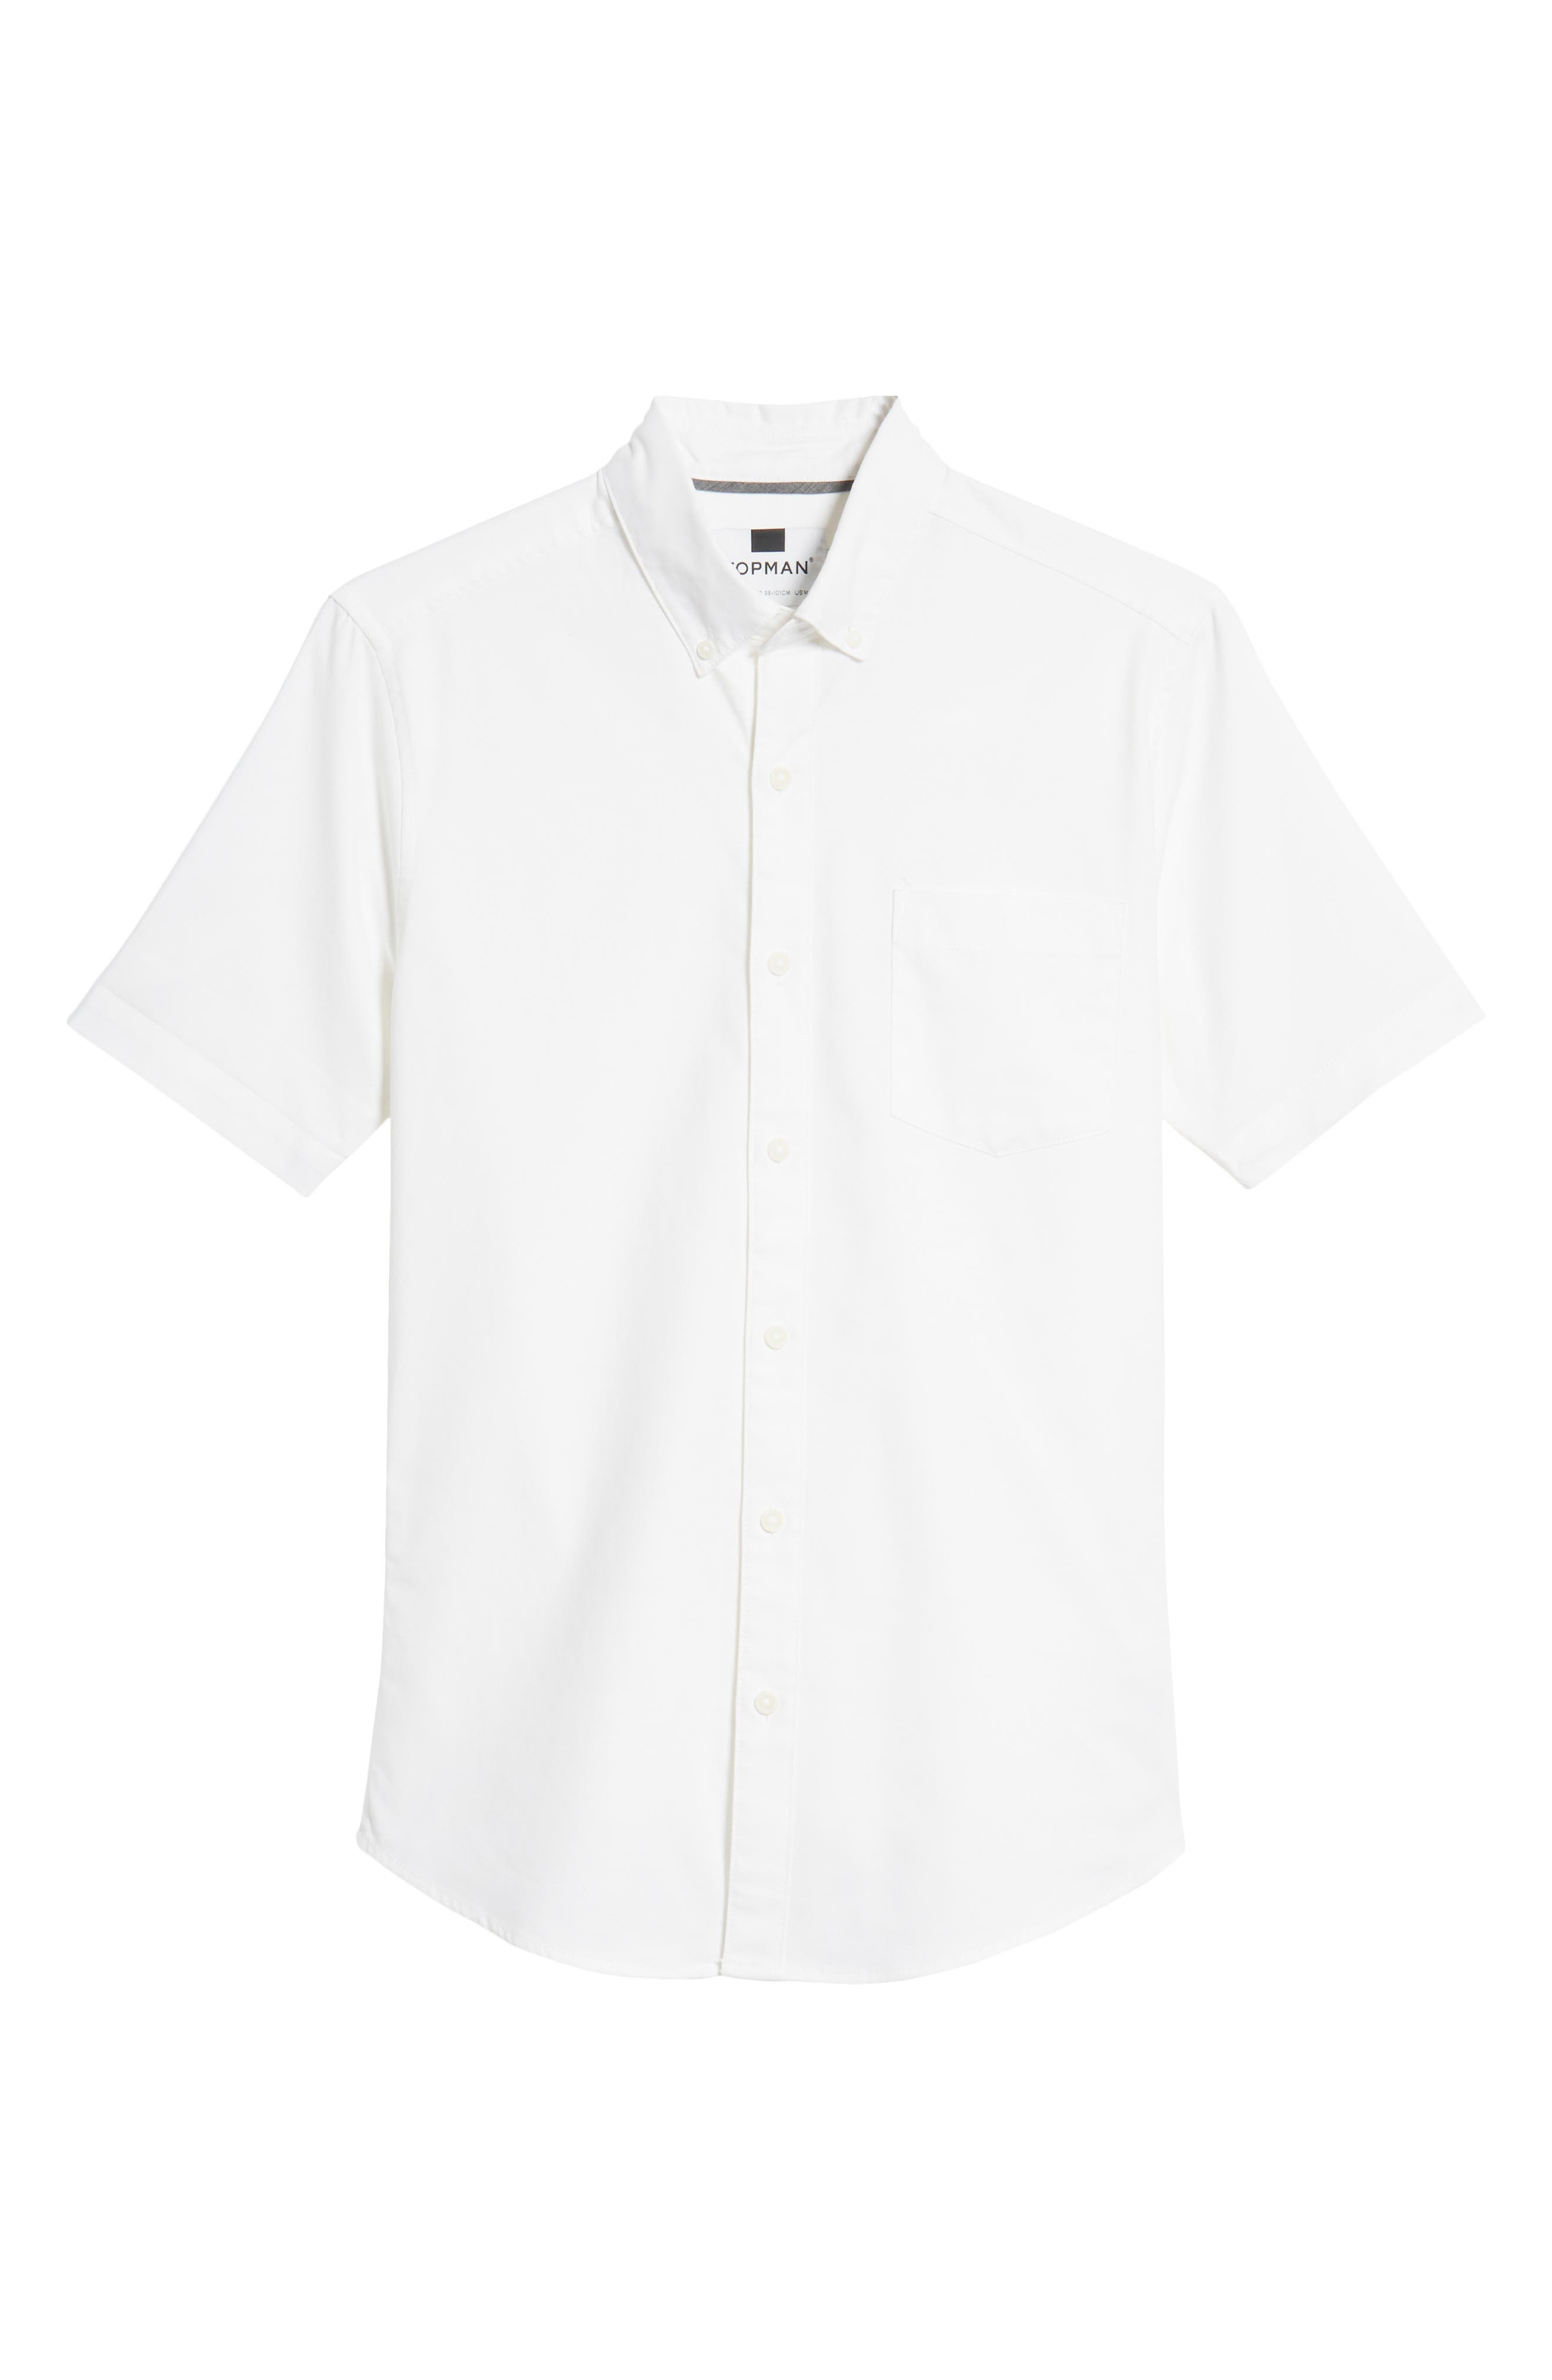 Muscle Fit Oxford Shirt,                             Alternate thumbnail 5, color,                             100